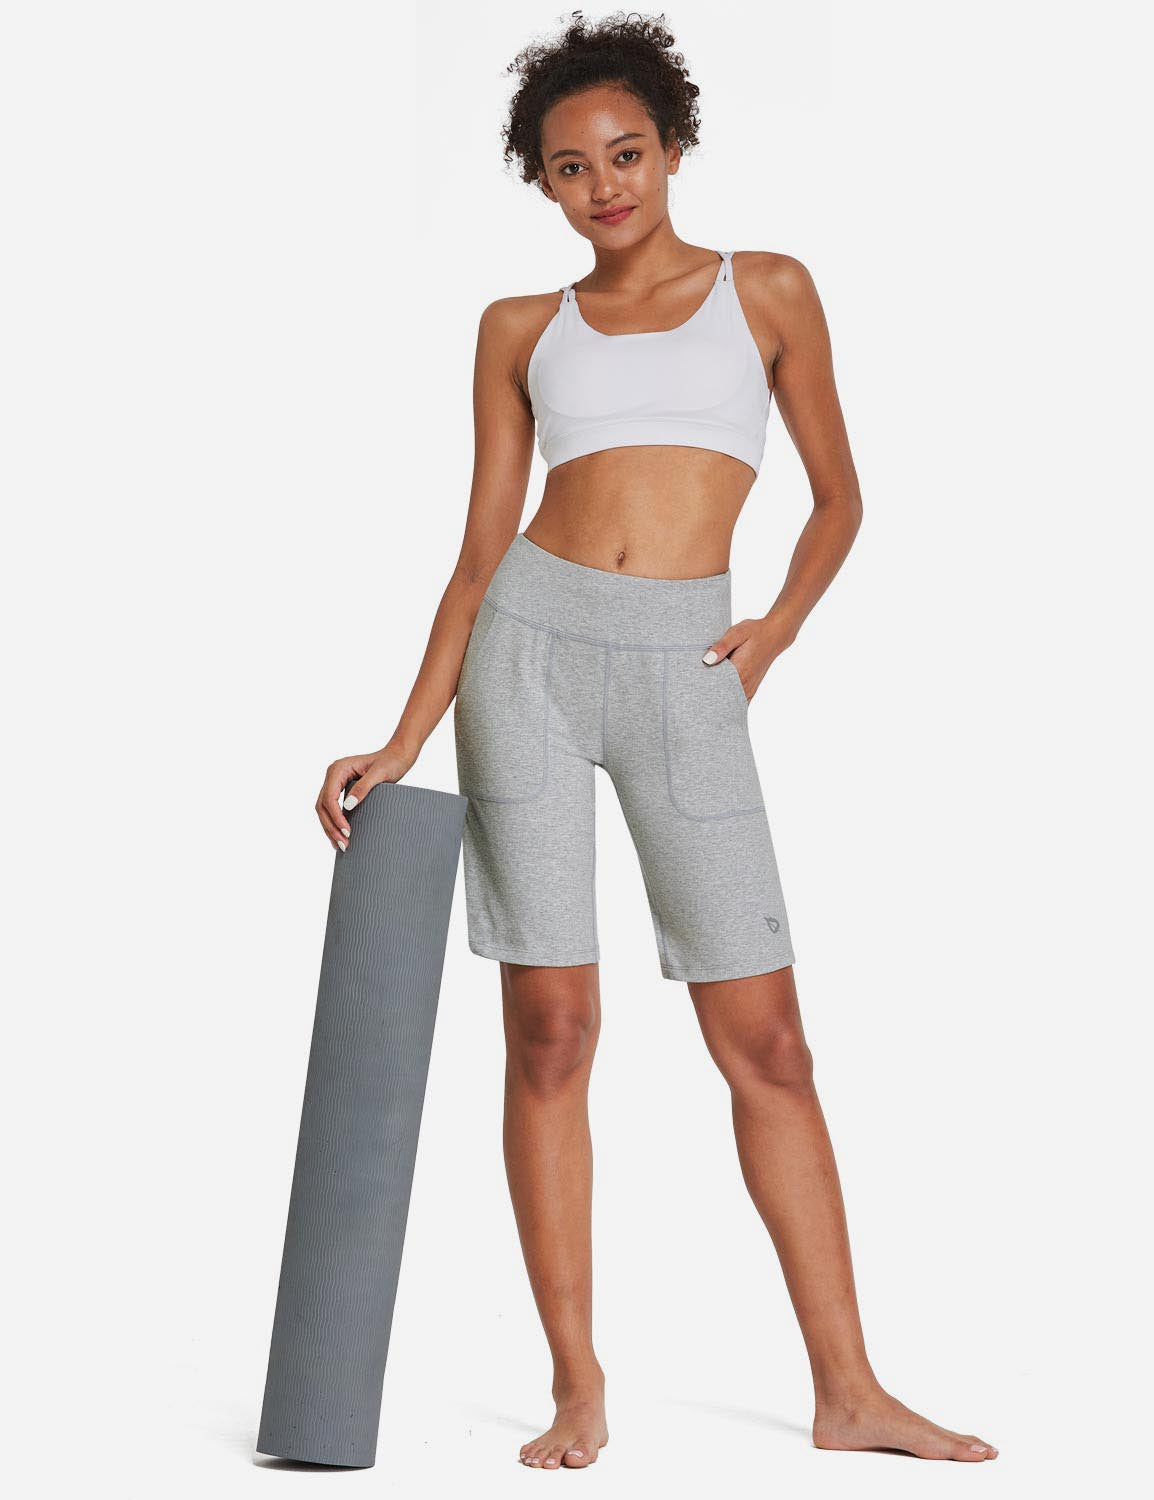 Baleaf Womens Mid Rise Tummy Control Pocketed Lounge Bermuda Shorts Baleaf Womens Mid Rise Tummy Control Pocketed Lounge Bermuda Shorts Light gray full